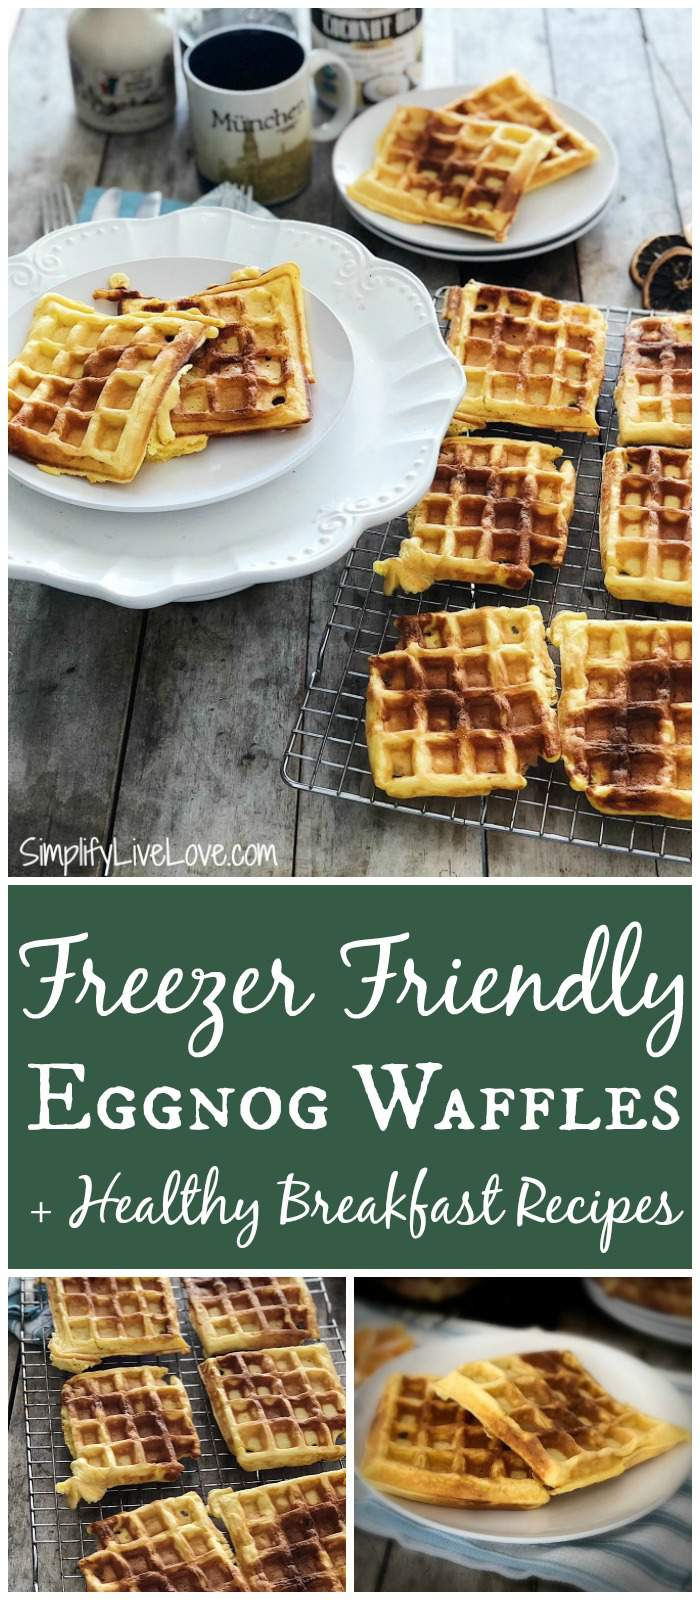 Enjoy these healthy breakfast recipes including eggnog waffles made w/ Barlean's organic culinary coconut oil. What a great way to use up leftover eggnog! #freezerfriendlyrecipes #eggnog #waffles #healthybreakfastrecipes